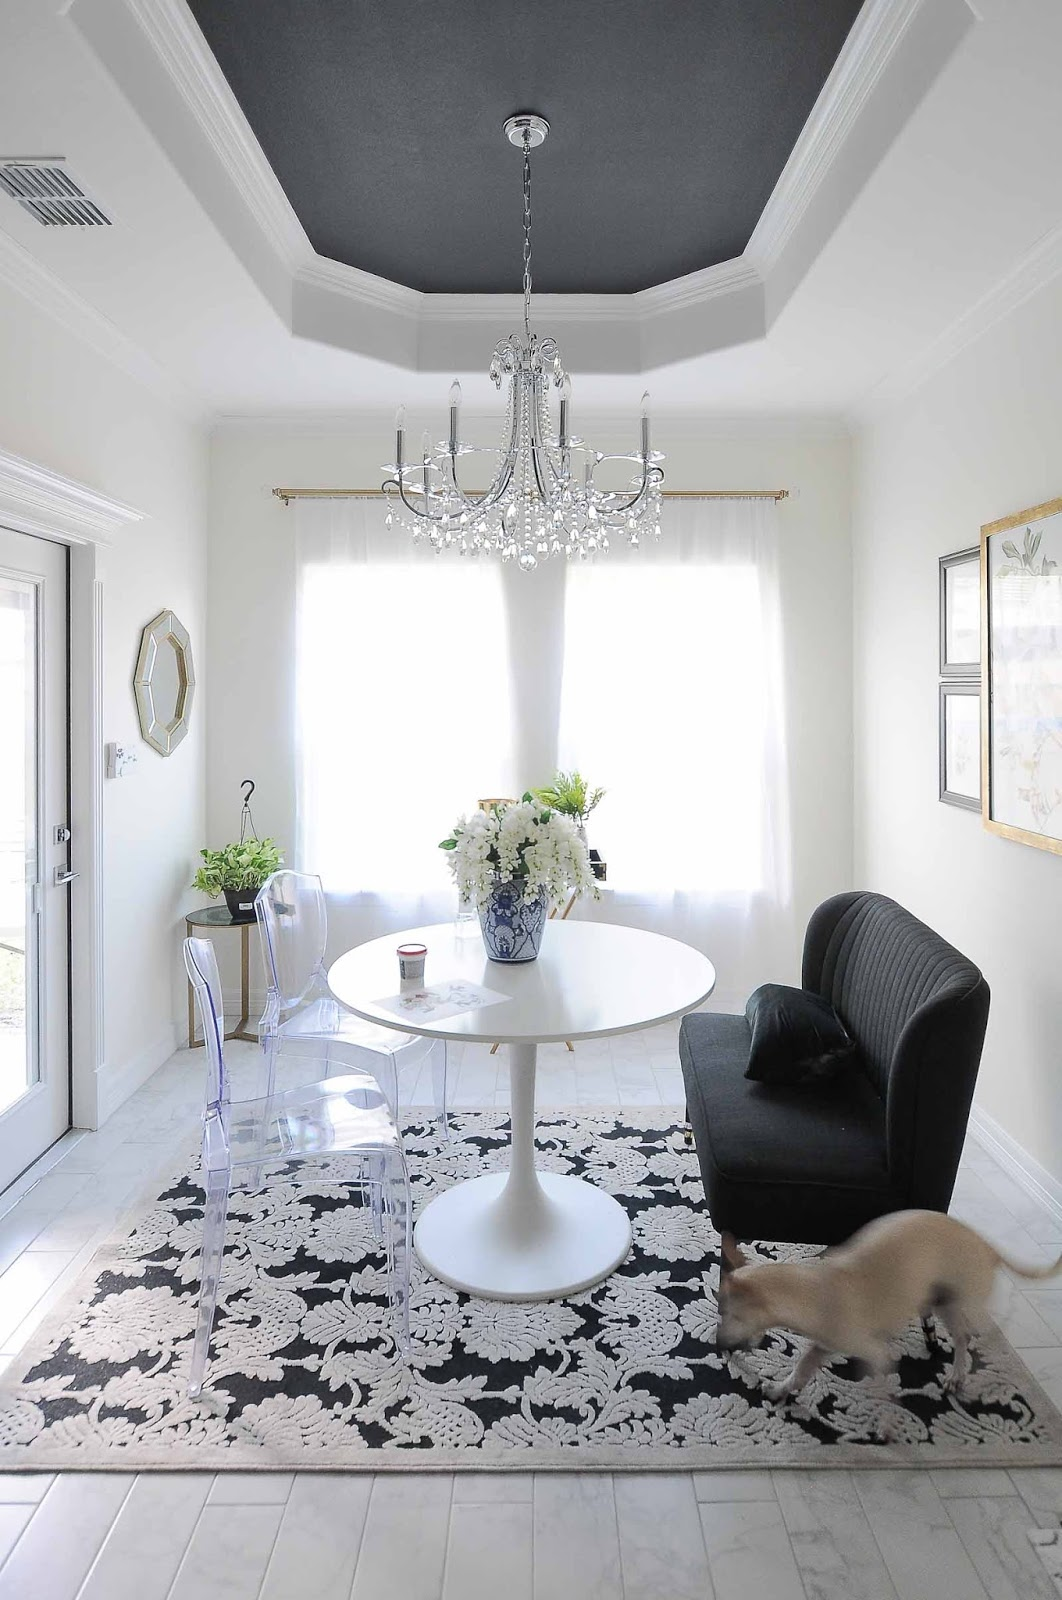 Arranging a functional layout in a small dining space. Love the round table, black ceiling and botanical vibe.